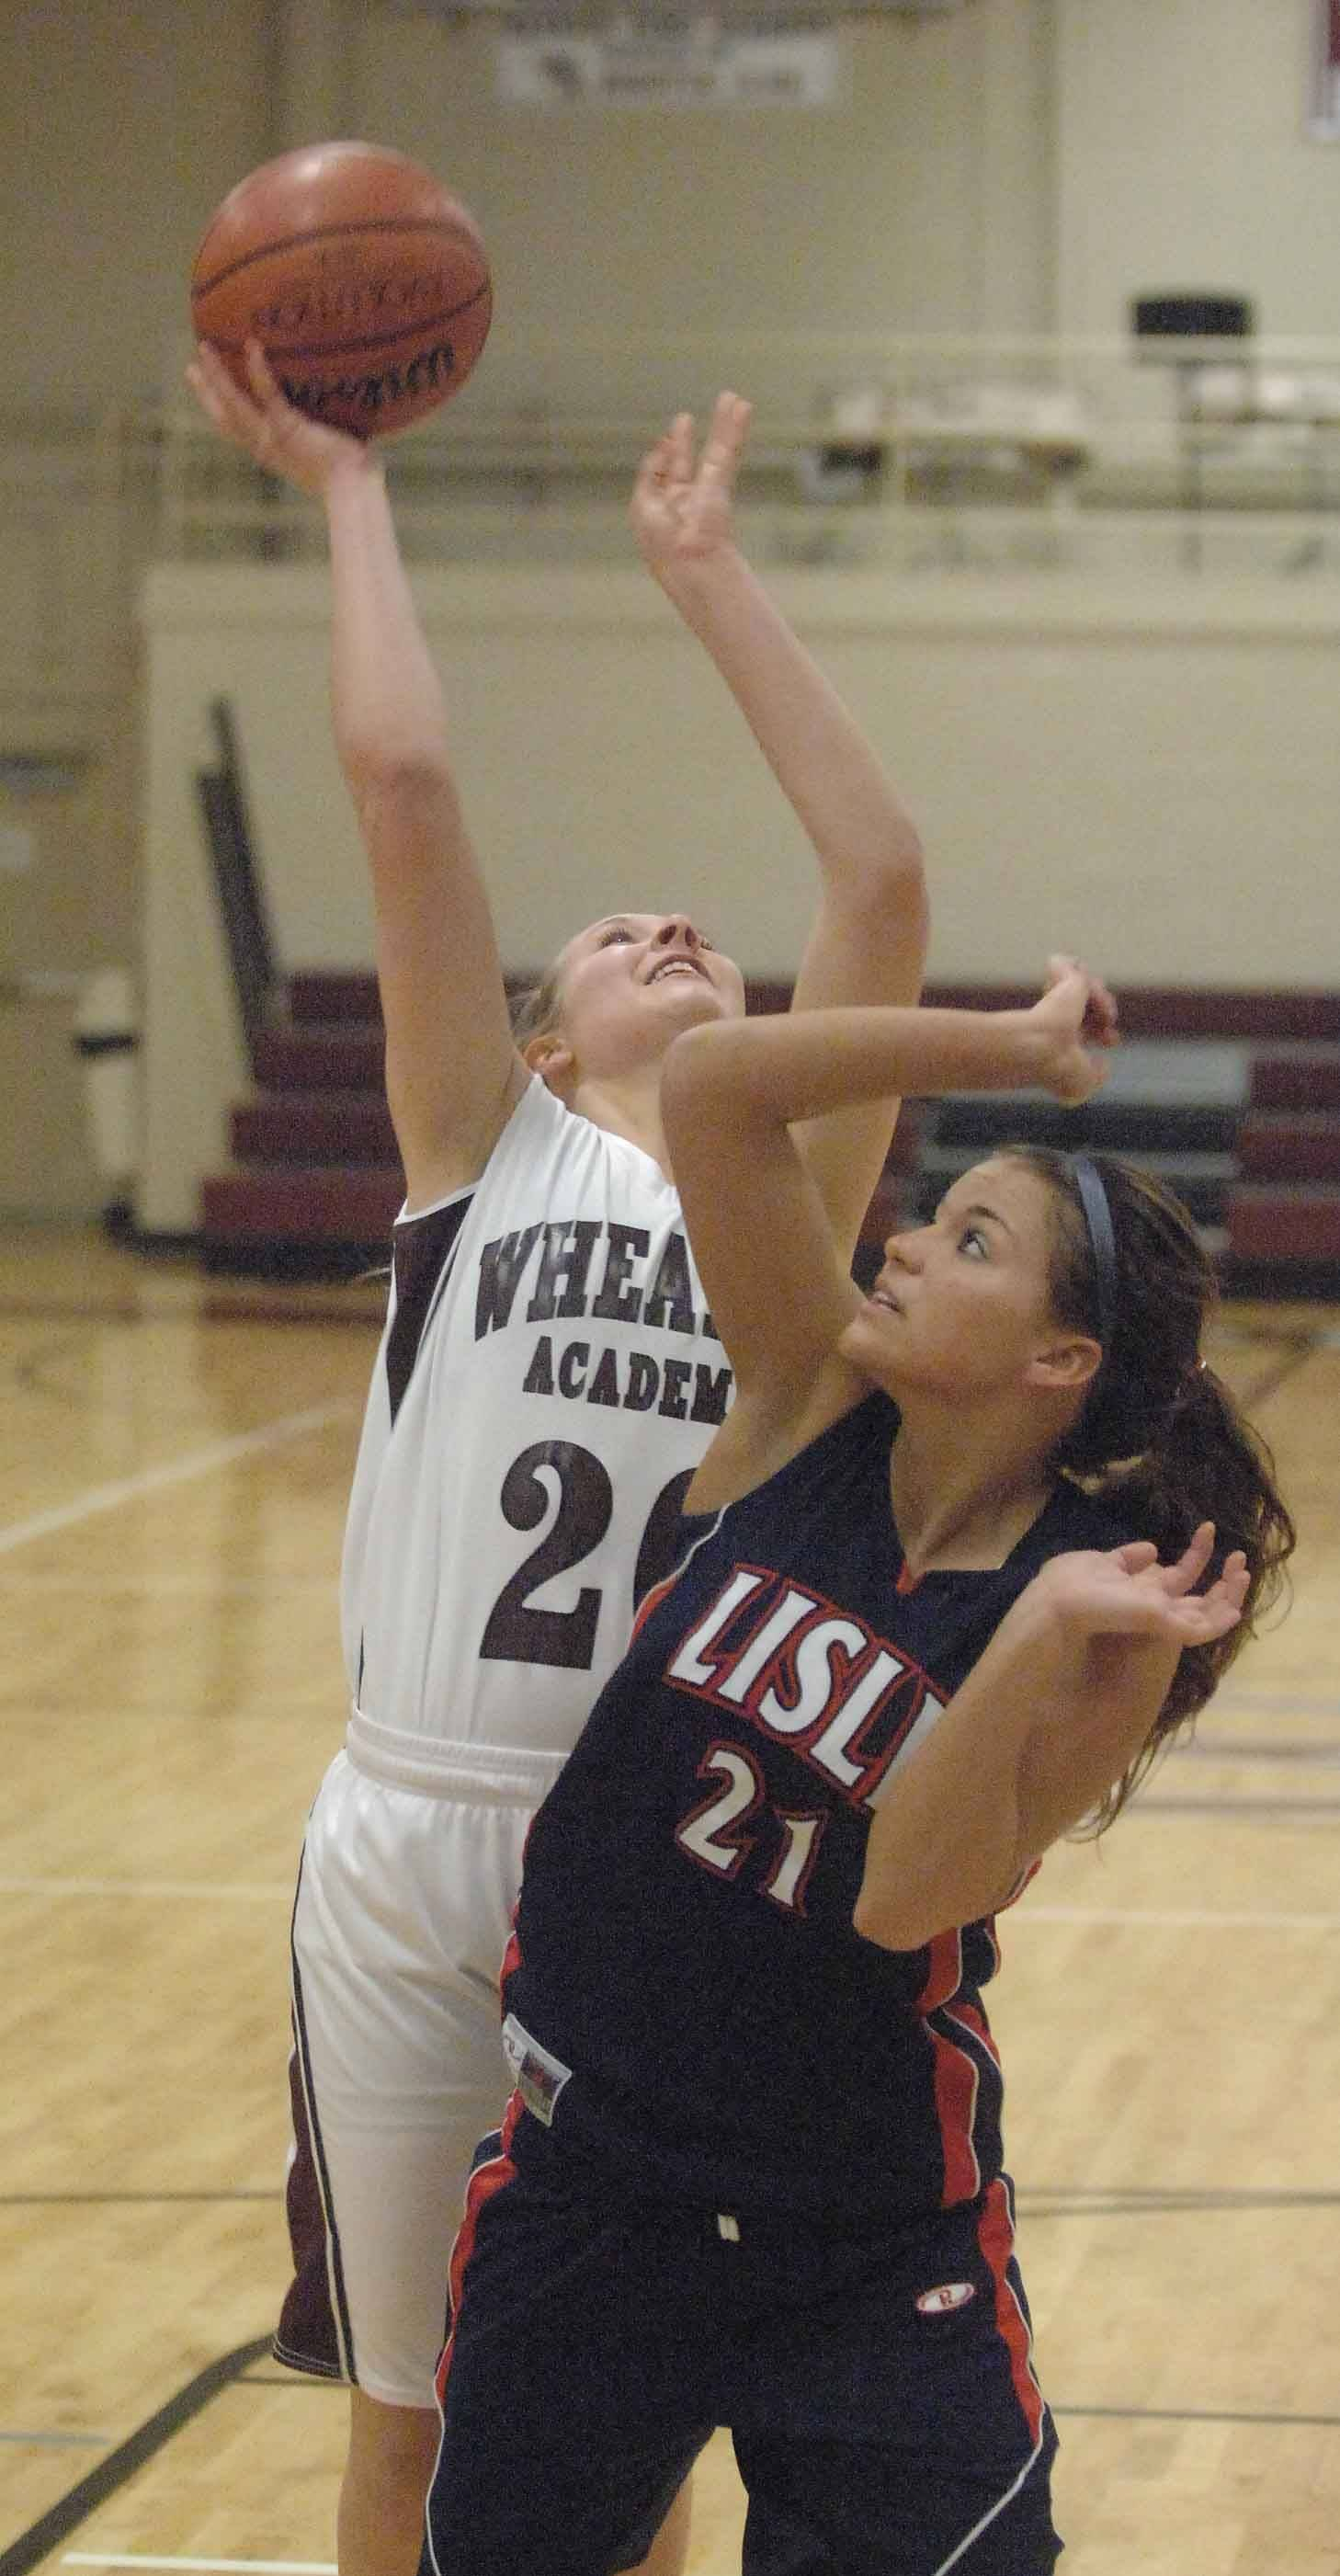 Sarah Drury of Wheaton Academy, left, and Kelly Urban of Lisle, during game action Tuesday.